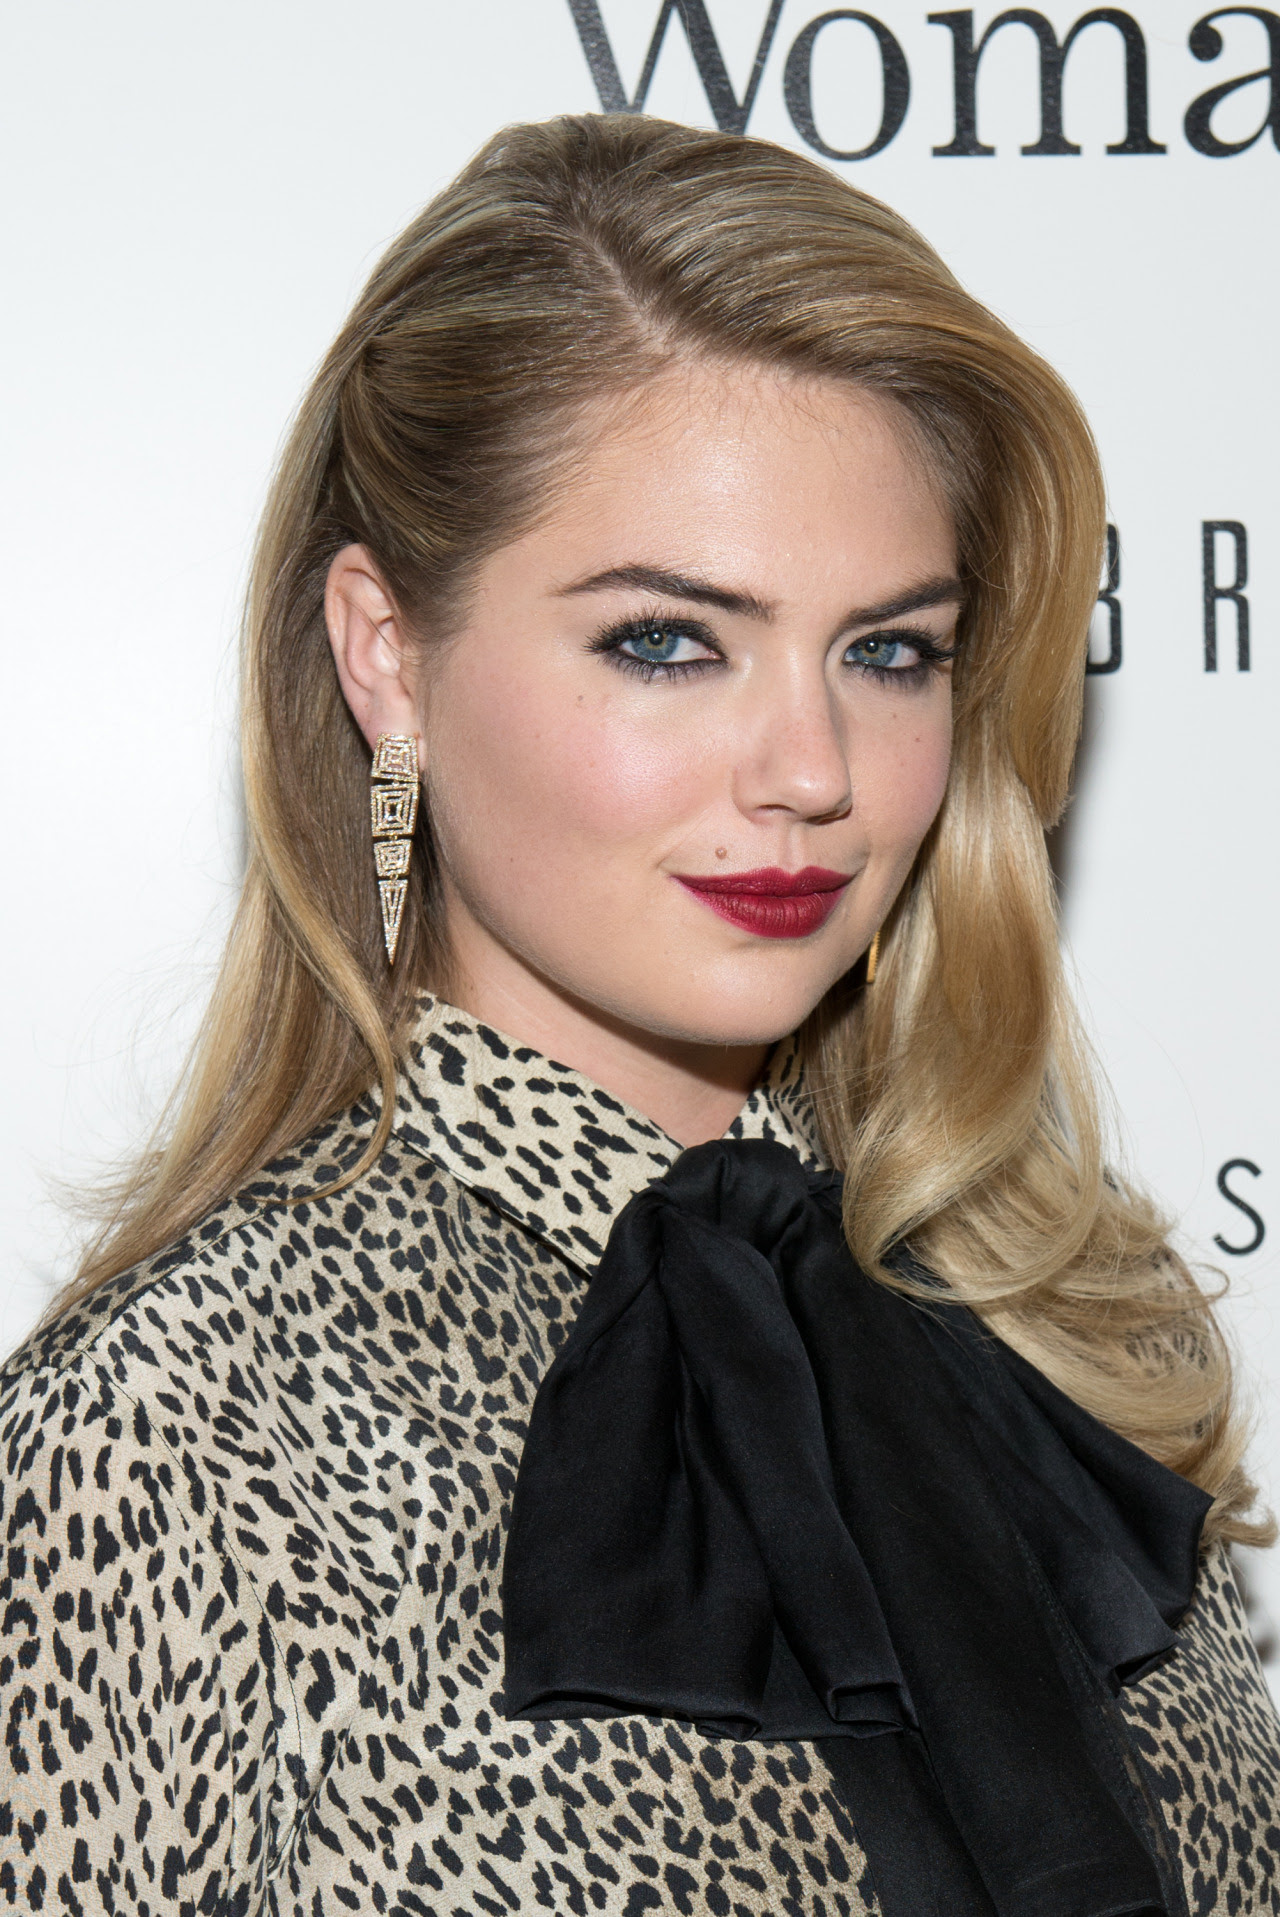 Kate Upton in Maiyet Open Machu Picchu earrings at The Cinema Society & Bobbi Brown with InStyle screening of 'The Other Woman' on April 24, 2014 in New York City.